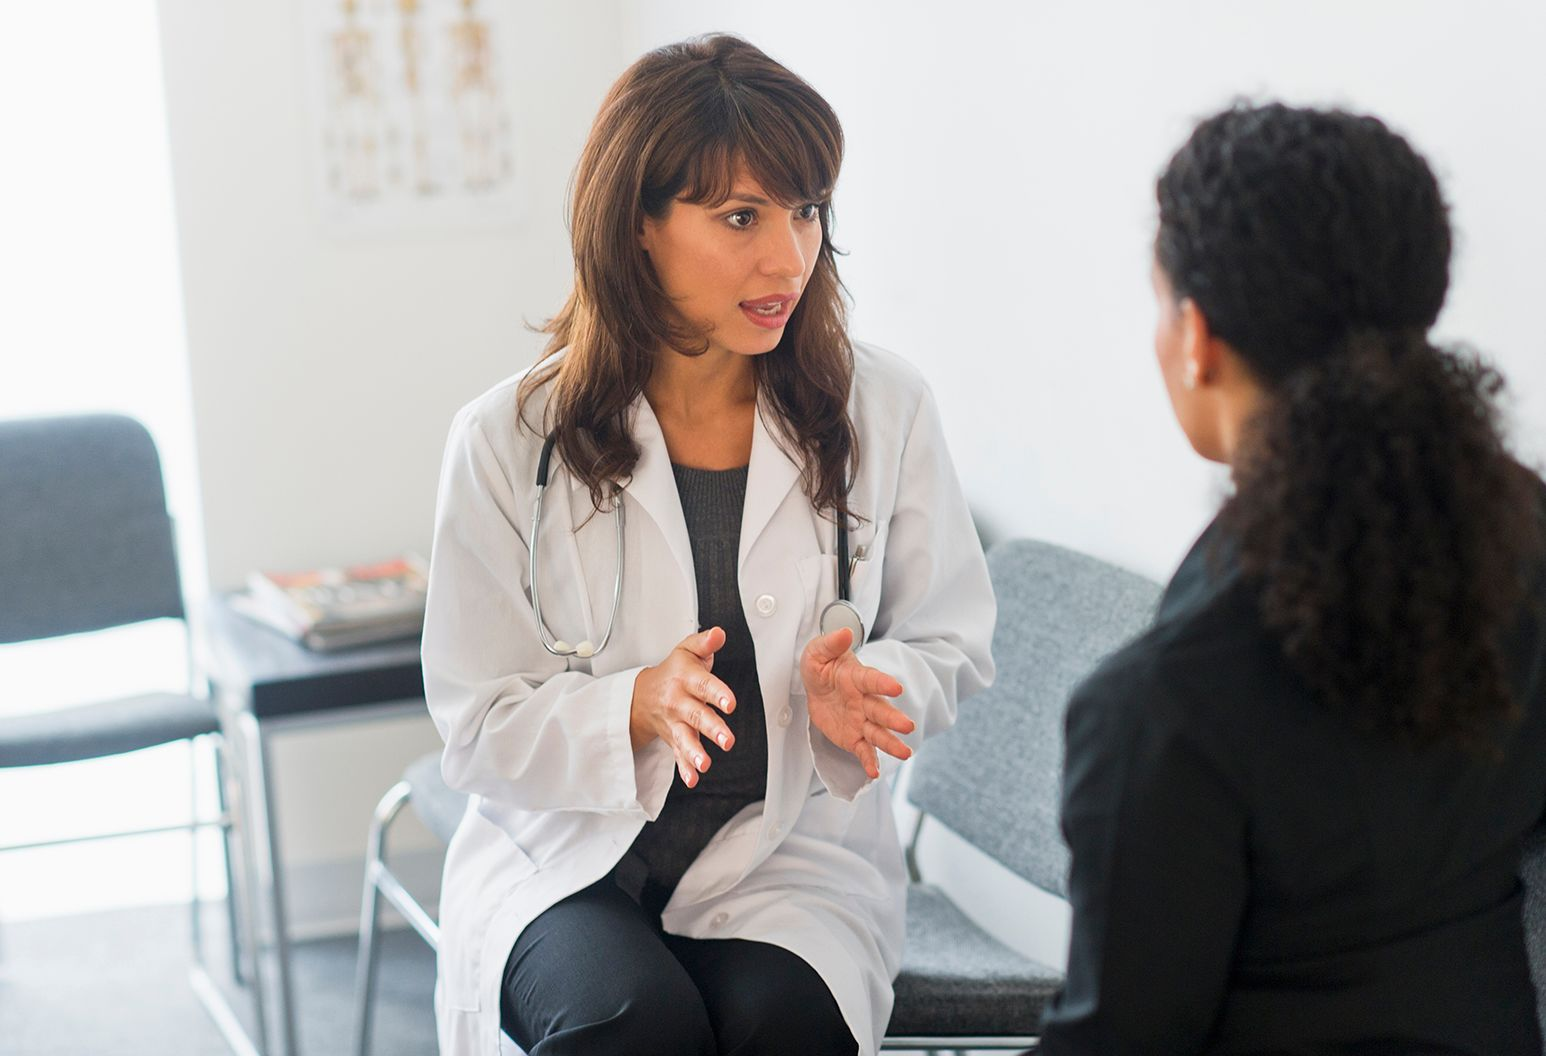 A doctor with long brown hair sitting in the waiting room talking to her patient